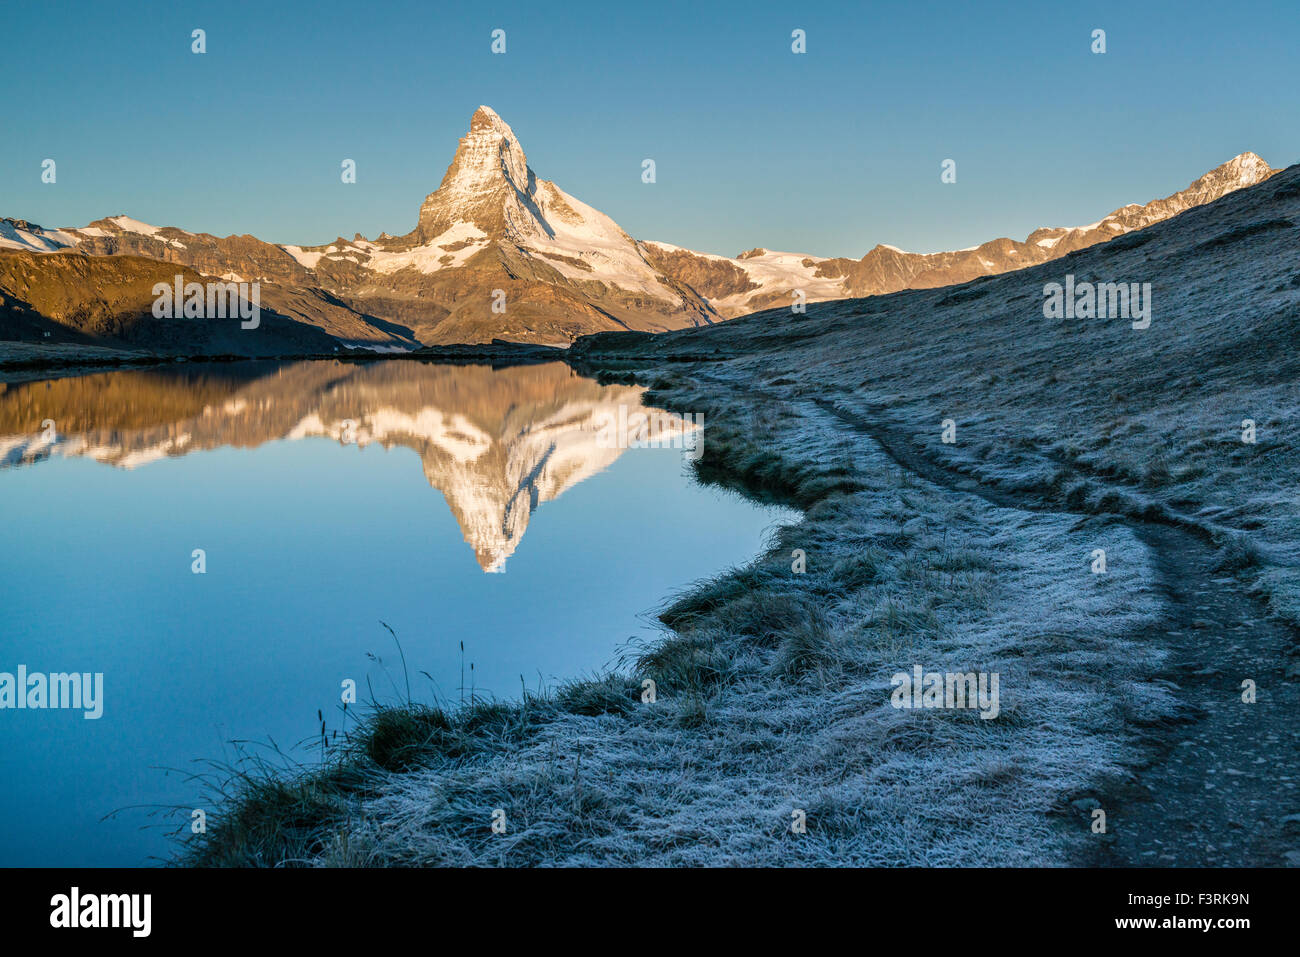 Reflection of the Matterhorn in Stellisee with hoarfrost, Switzerland - Stock Image